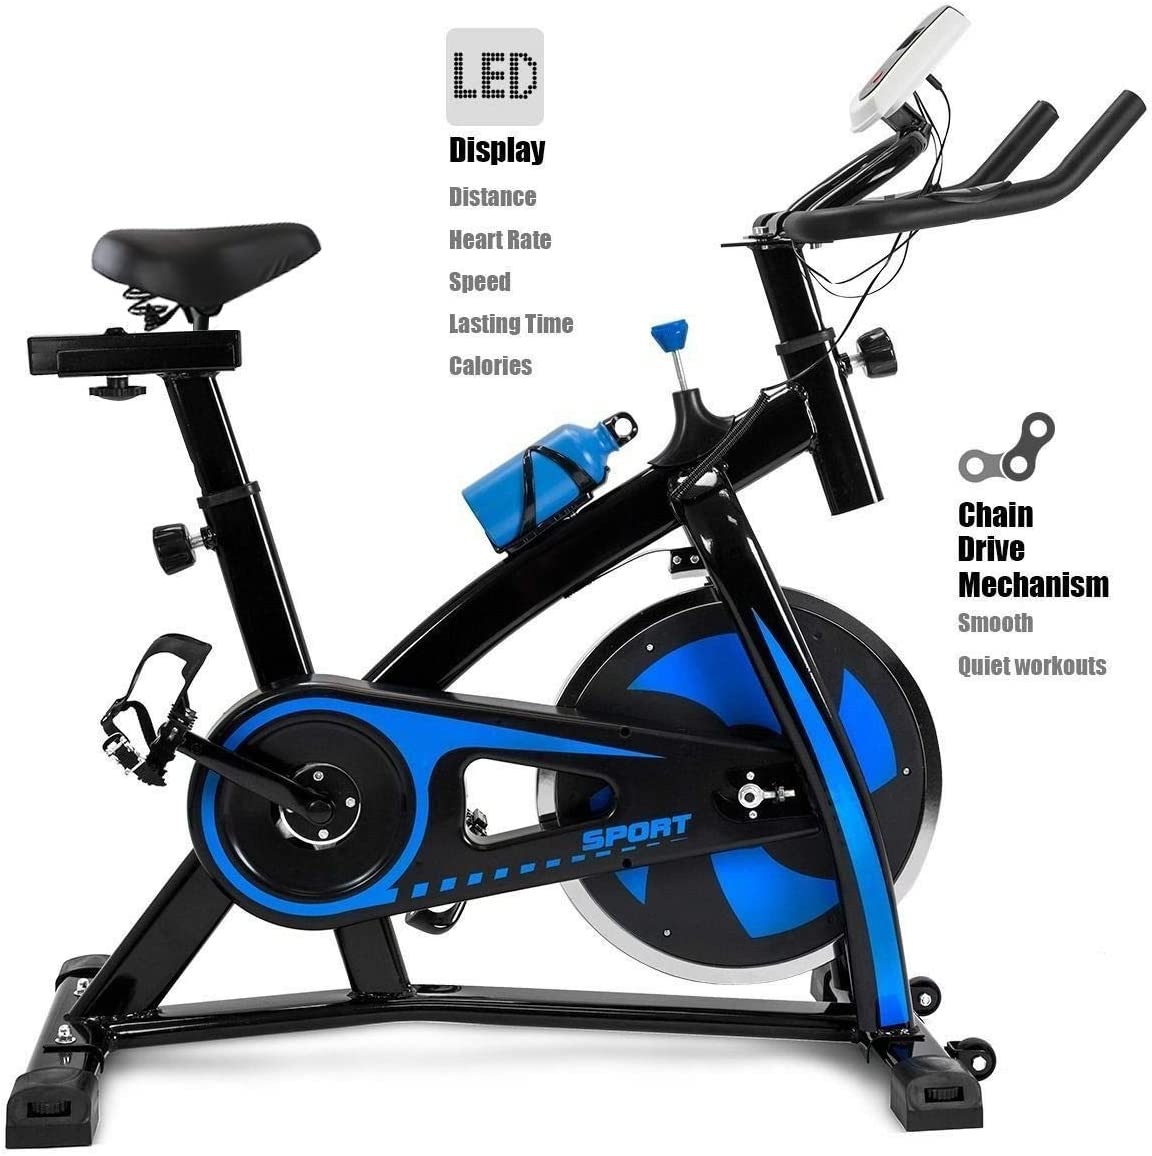 Zcalasky Bicycle Cycling Fitness Gym Exercise Stationary Bike Cardio Workout Home Indoor